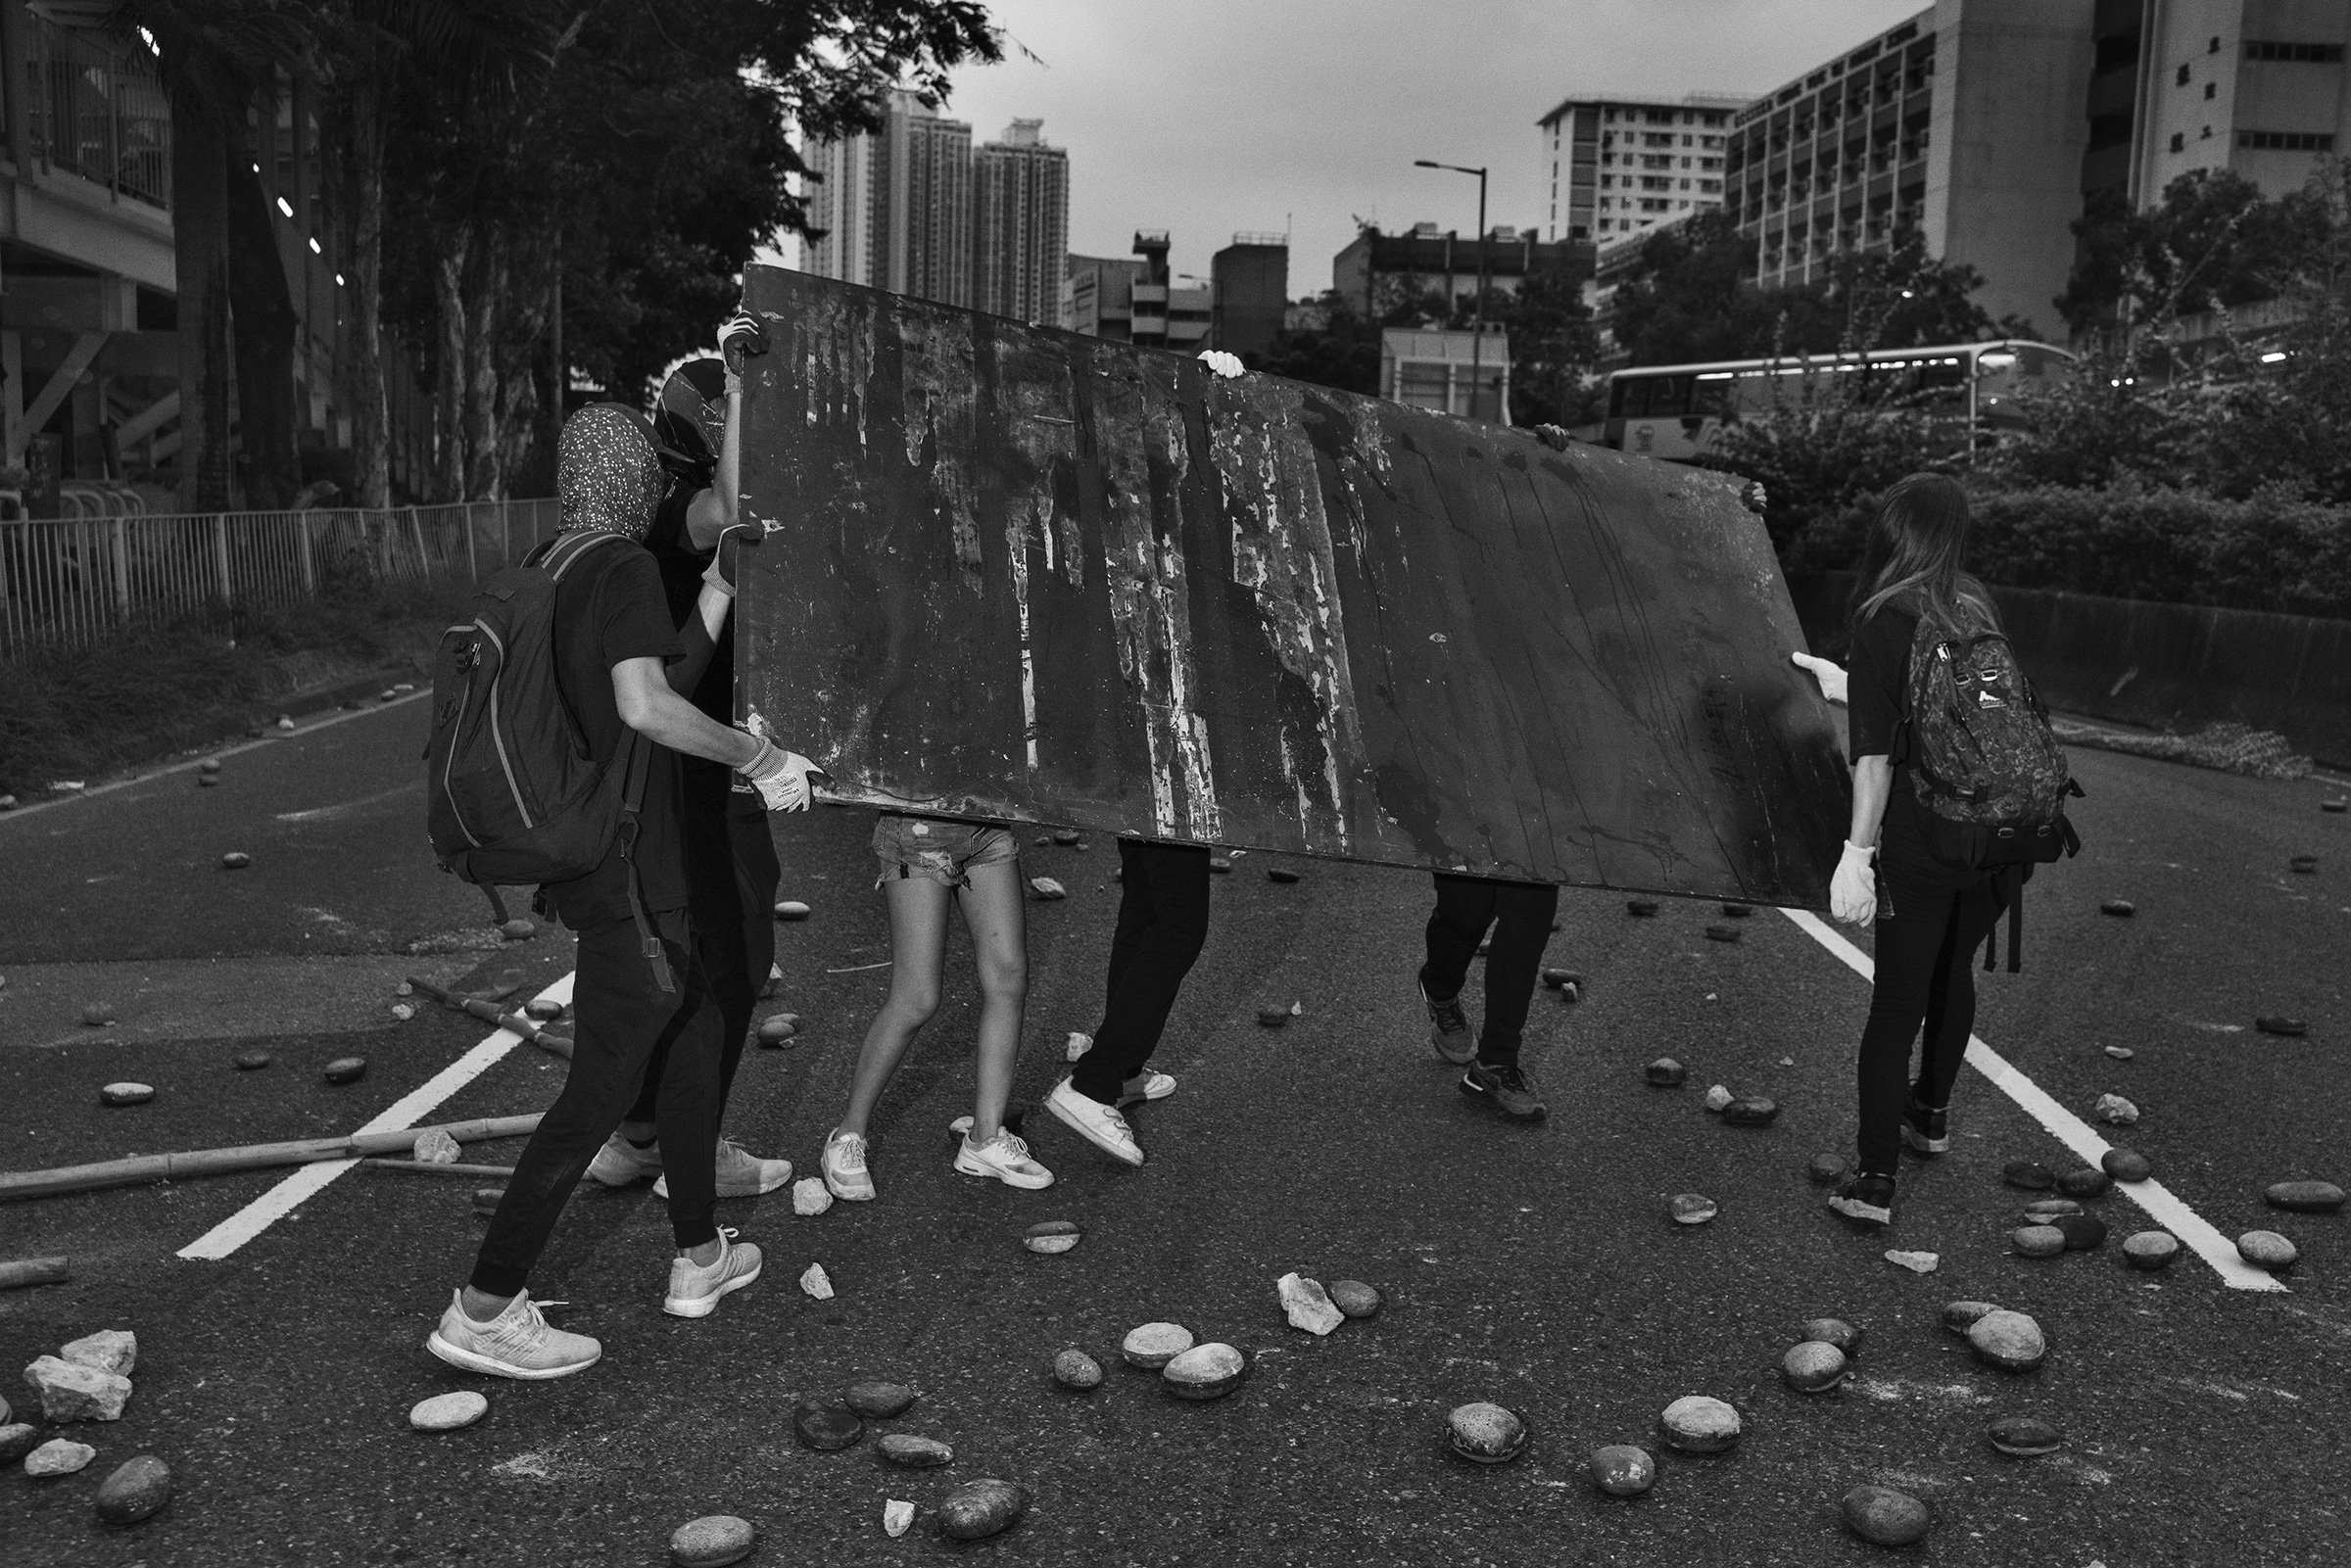 Antigovernment protesters block a road near the Tai Wai train station on Aug. 10.